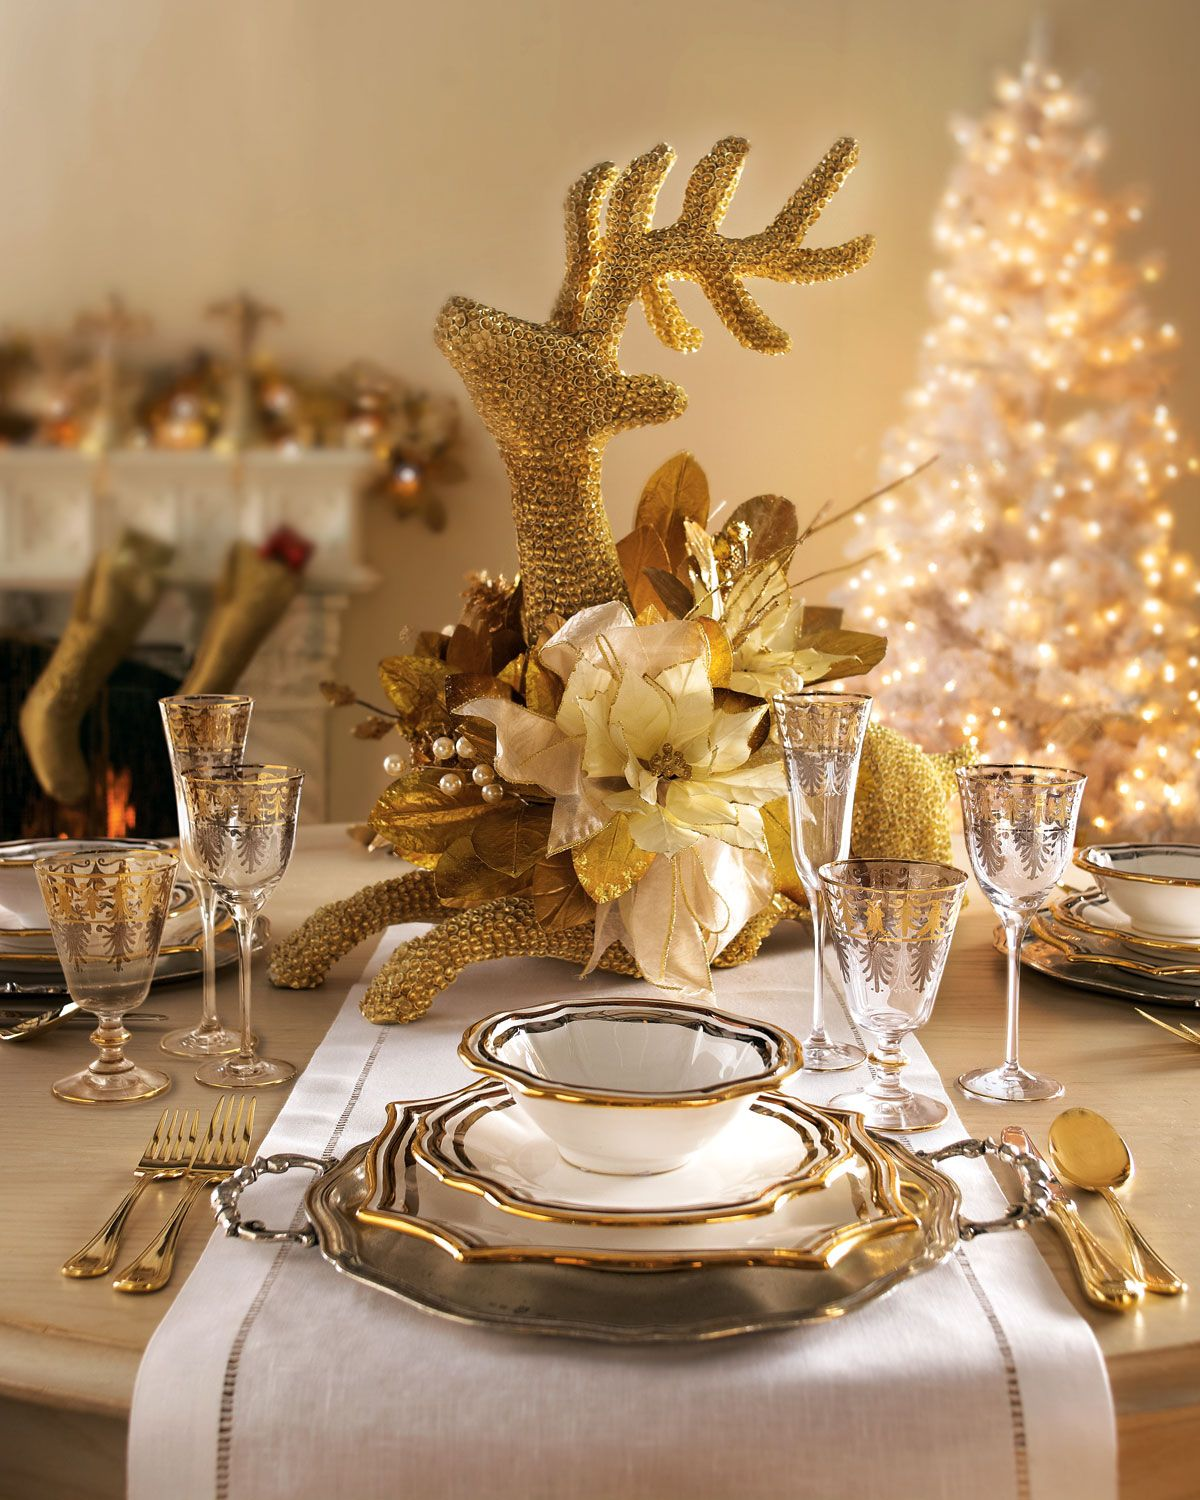 Christmas table decorations gold - Dining Tables Christmas Table Settings Red And Gold